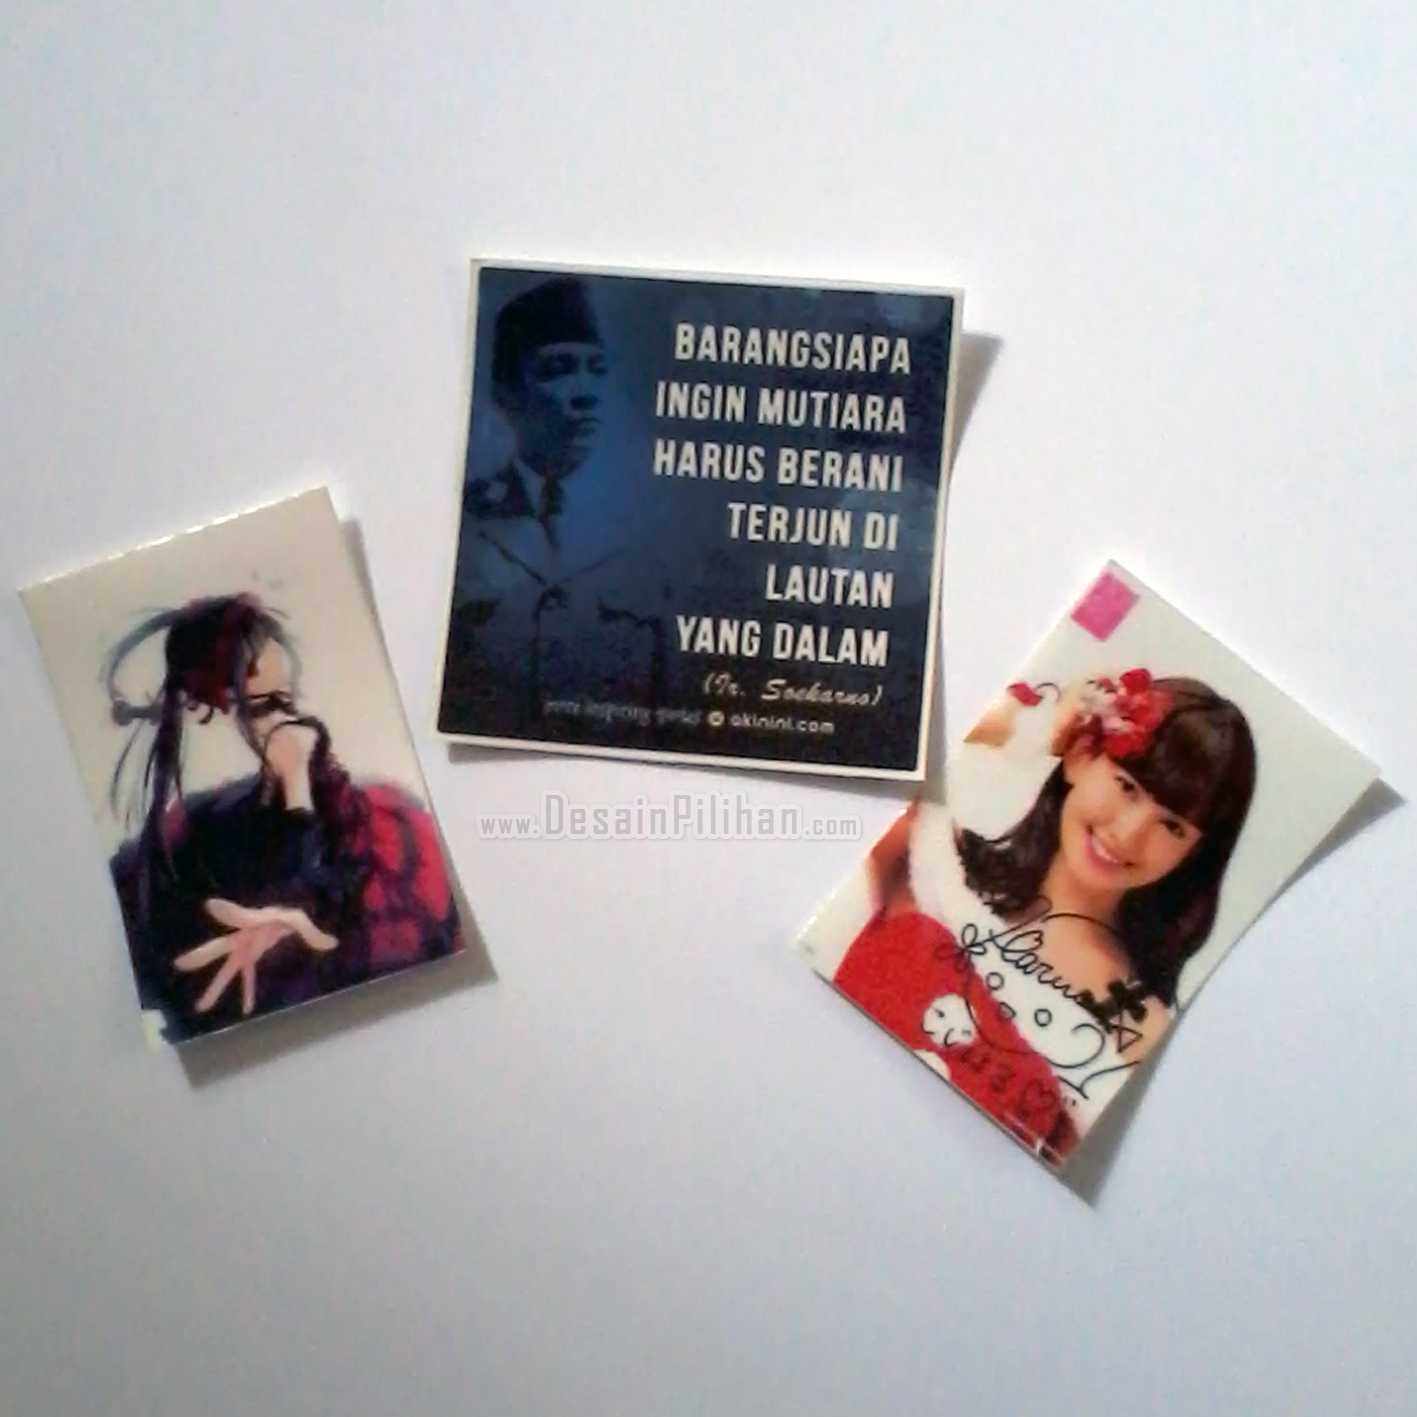 STICKER CUSTOM, STICKER HARUKA JKT48, STICKER AIKATSU, STICKER BUNG KARNO, STICKER QUOTE